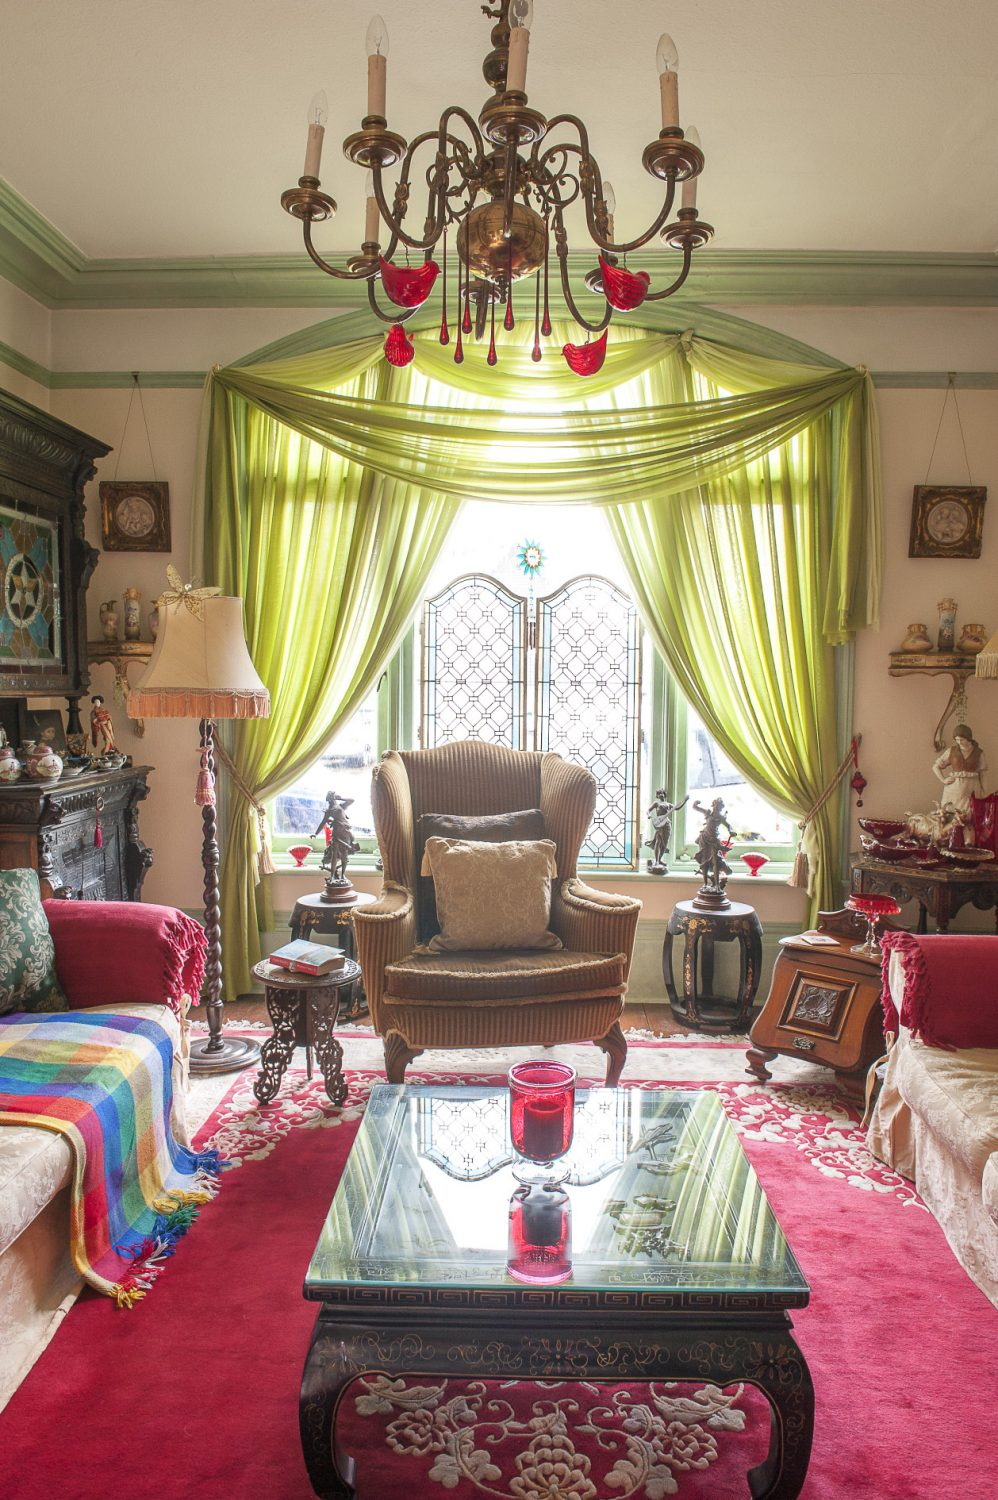 A window is generously swathed with metres of rich green fabric in the more formal of the two drawing rooms